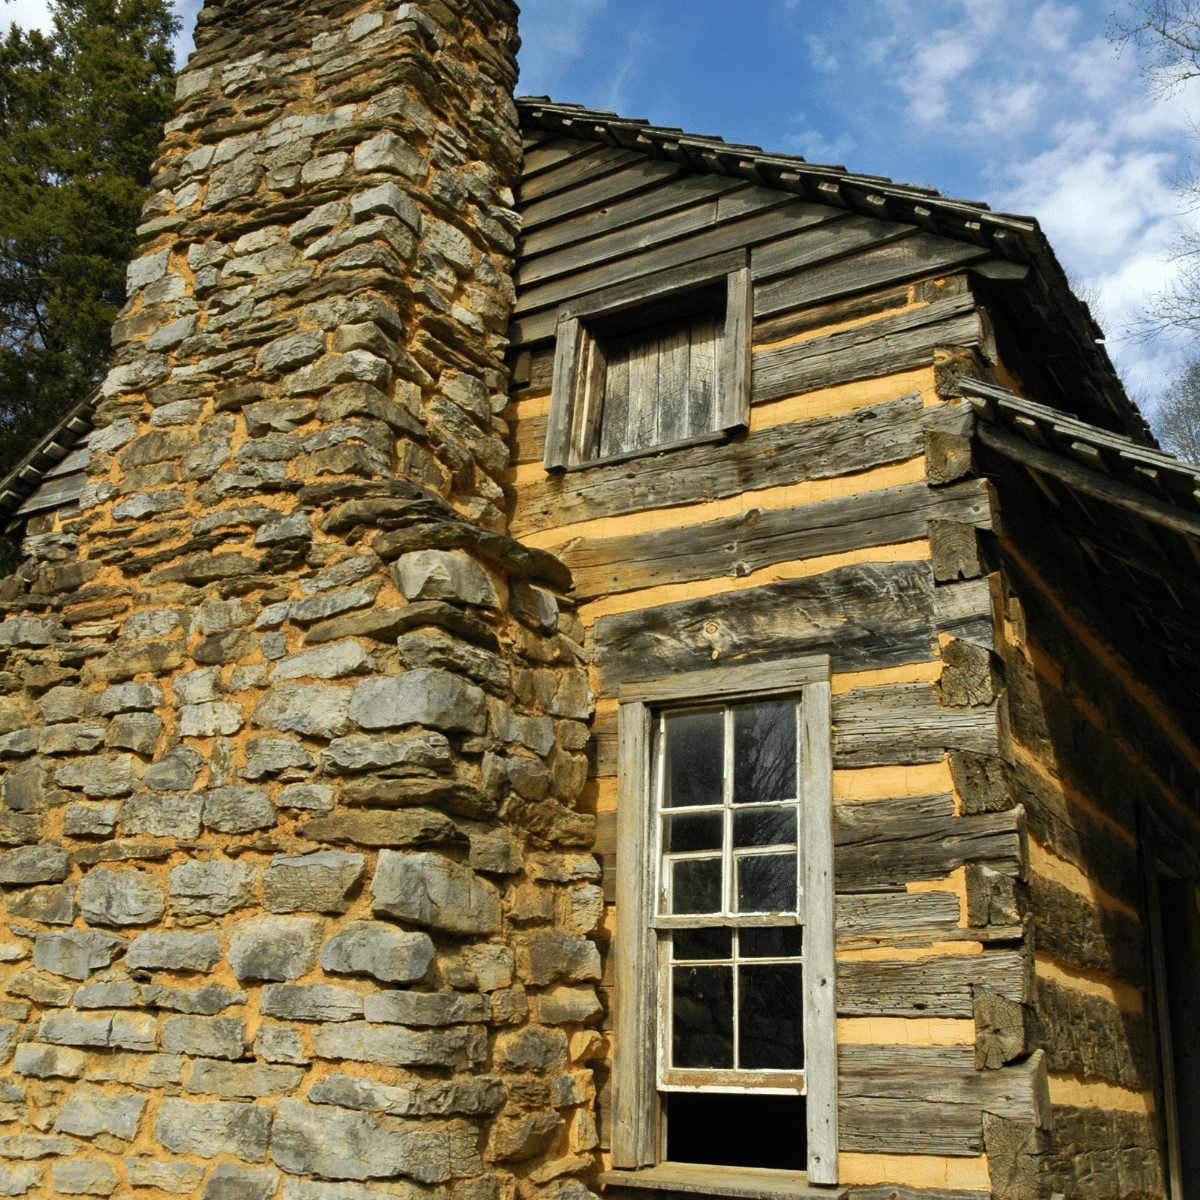 close up of a small window in a log cabin